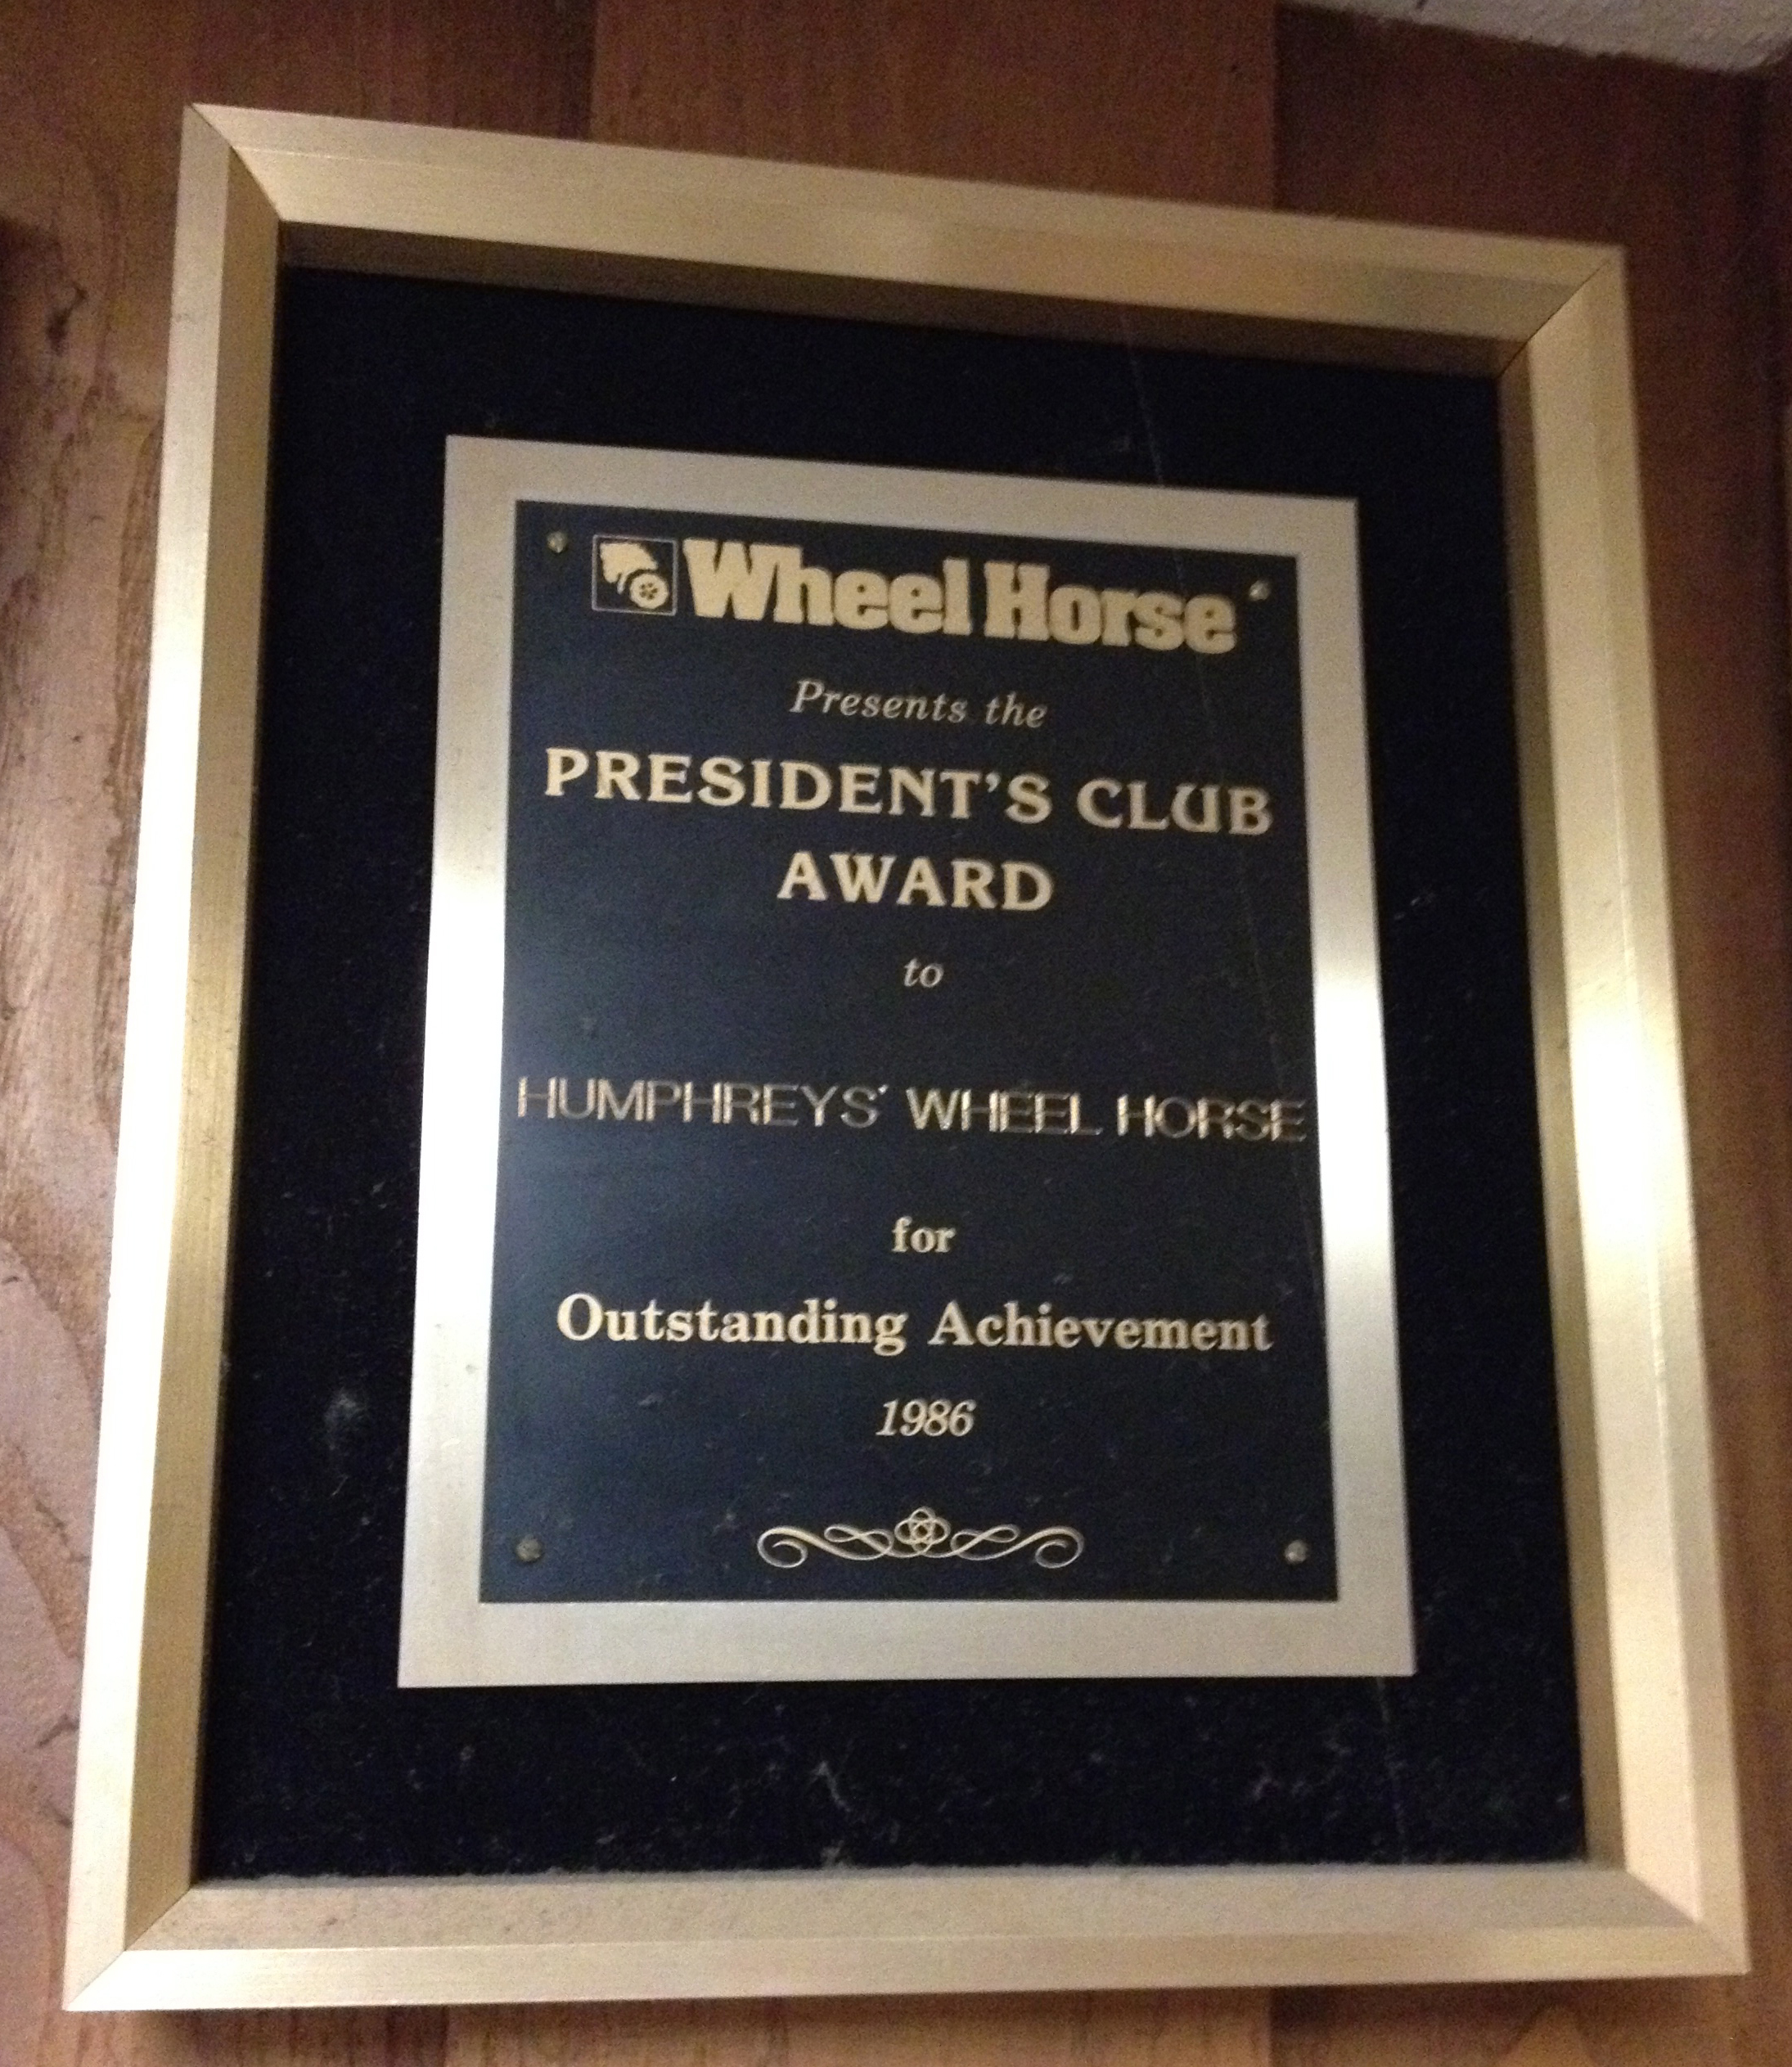 The Presidents Club award from Wheel Horse for outstanding achievement in sales and service. Humphreys' has won this award every year from 1985-1989